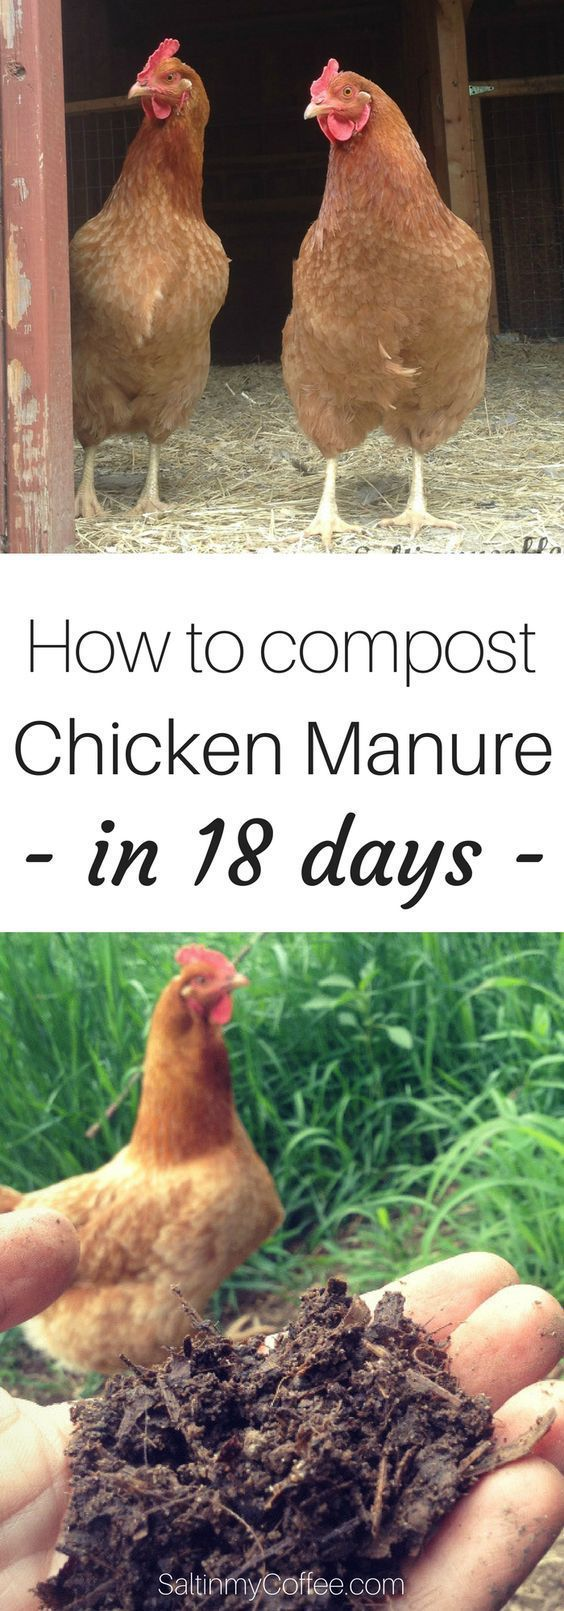 Did you know you can turn the deep litter from your chicken coop into garden ready compost in just 18 days? Here's how!